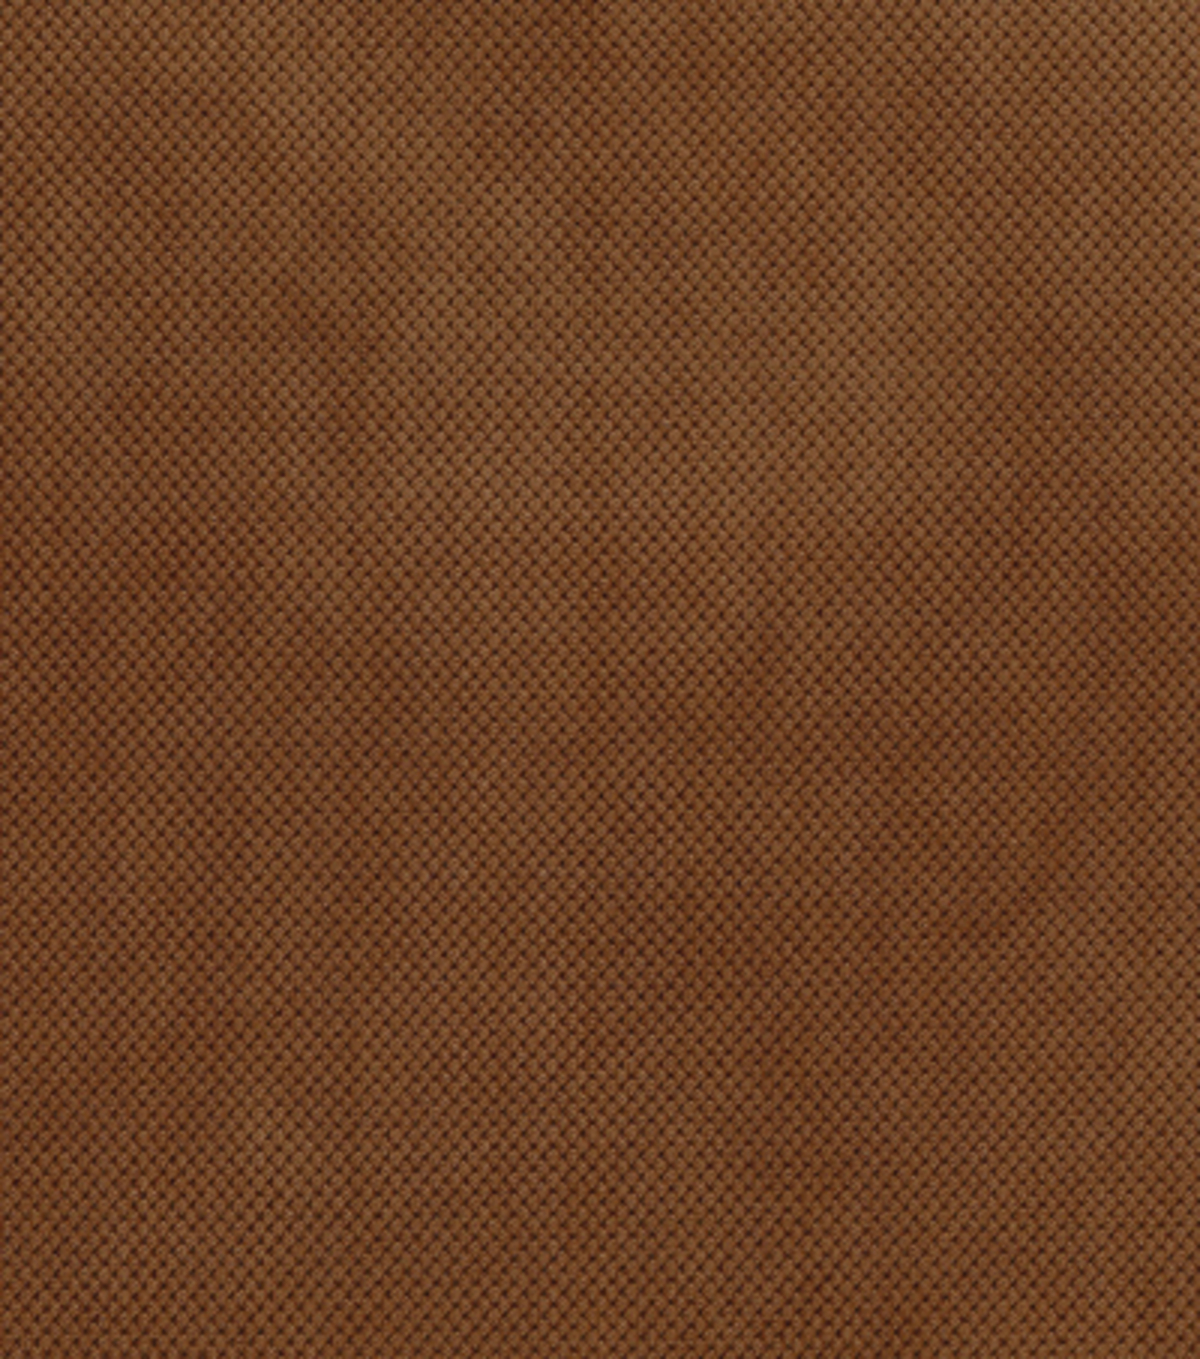 Richloom Signature Series Lightweight Decor Fabric 55\u0022- Bradford Nutmeg